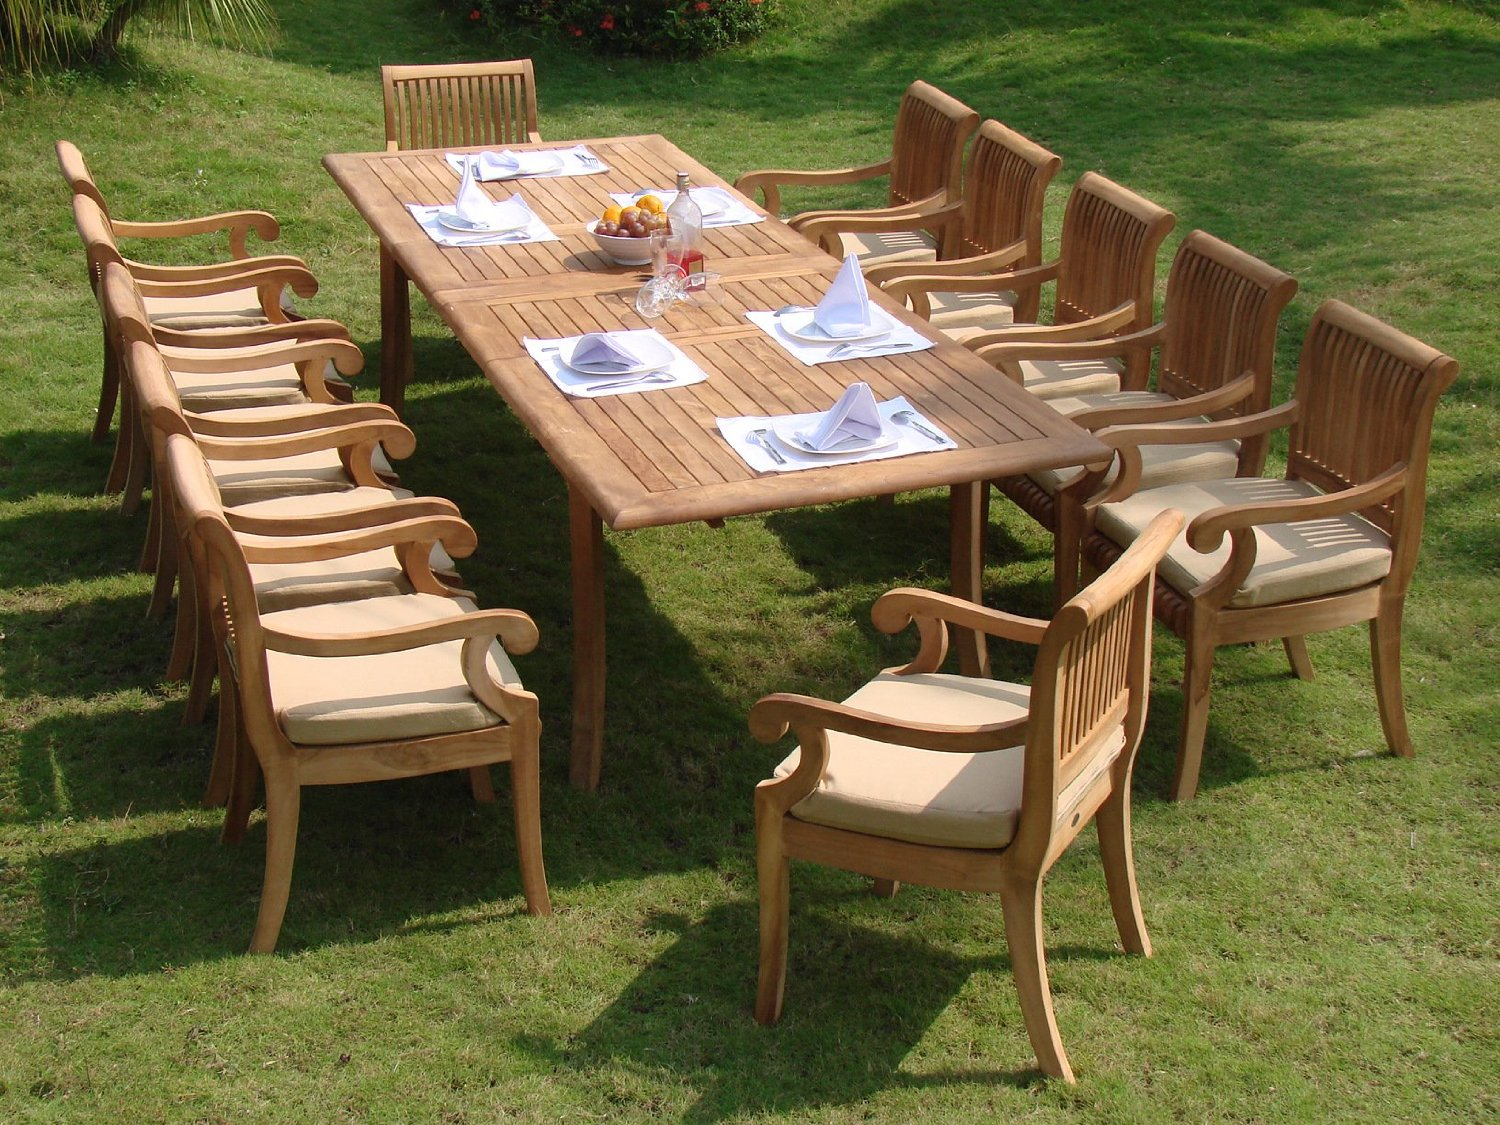 Patio Furniture Table And Chairs Compare And Choose Reviewing The Best Teak Outdoor Dining Sets